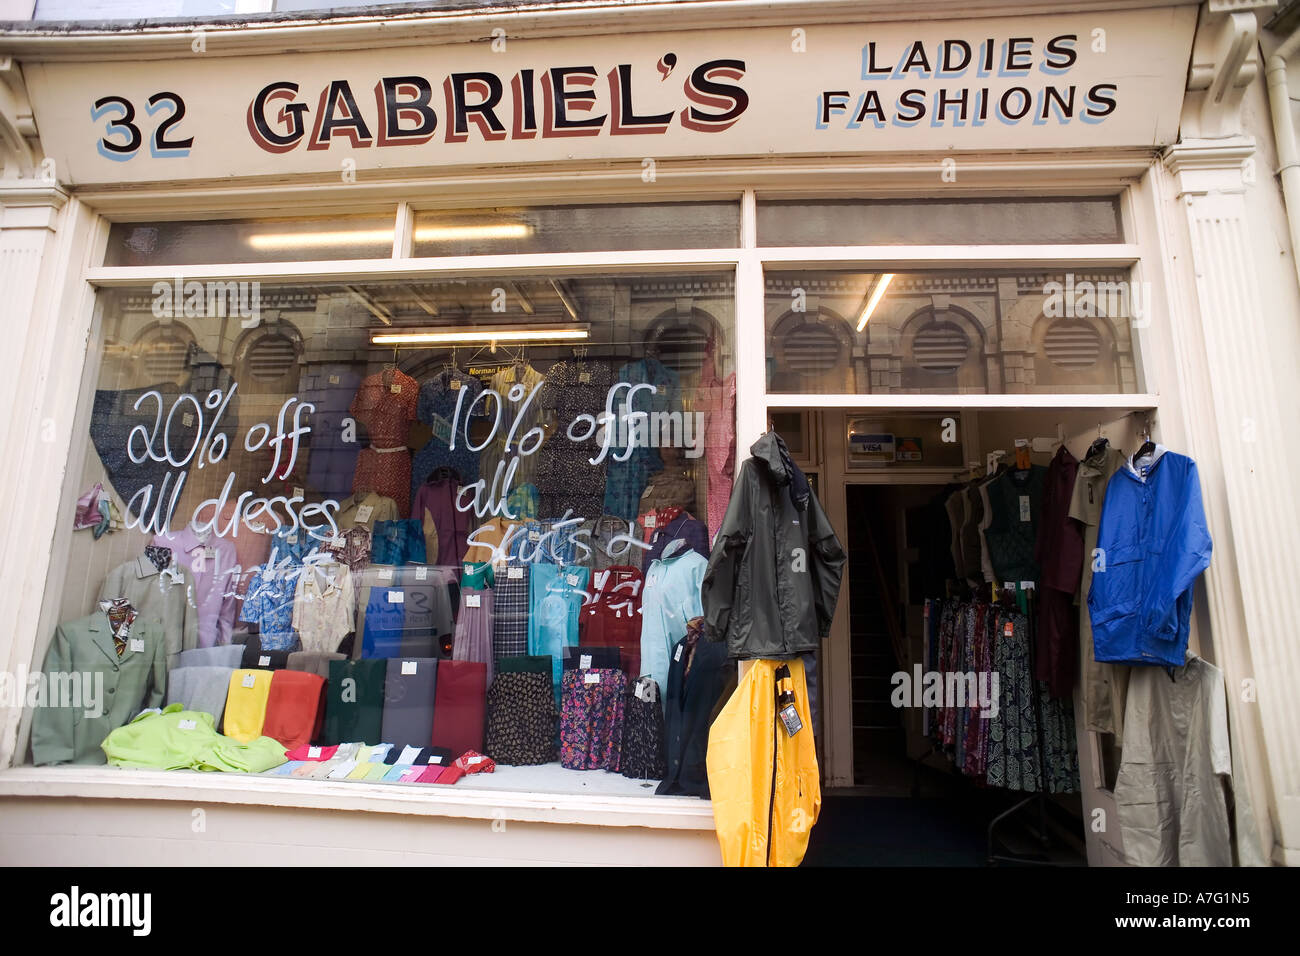 e7e60bf85 GABRIEL'S LADIES FASHION SHOP ST-PETER PORT GUERNSEY CHANNEL ISLANDS  GREAT-BRITAIN